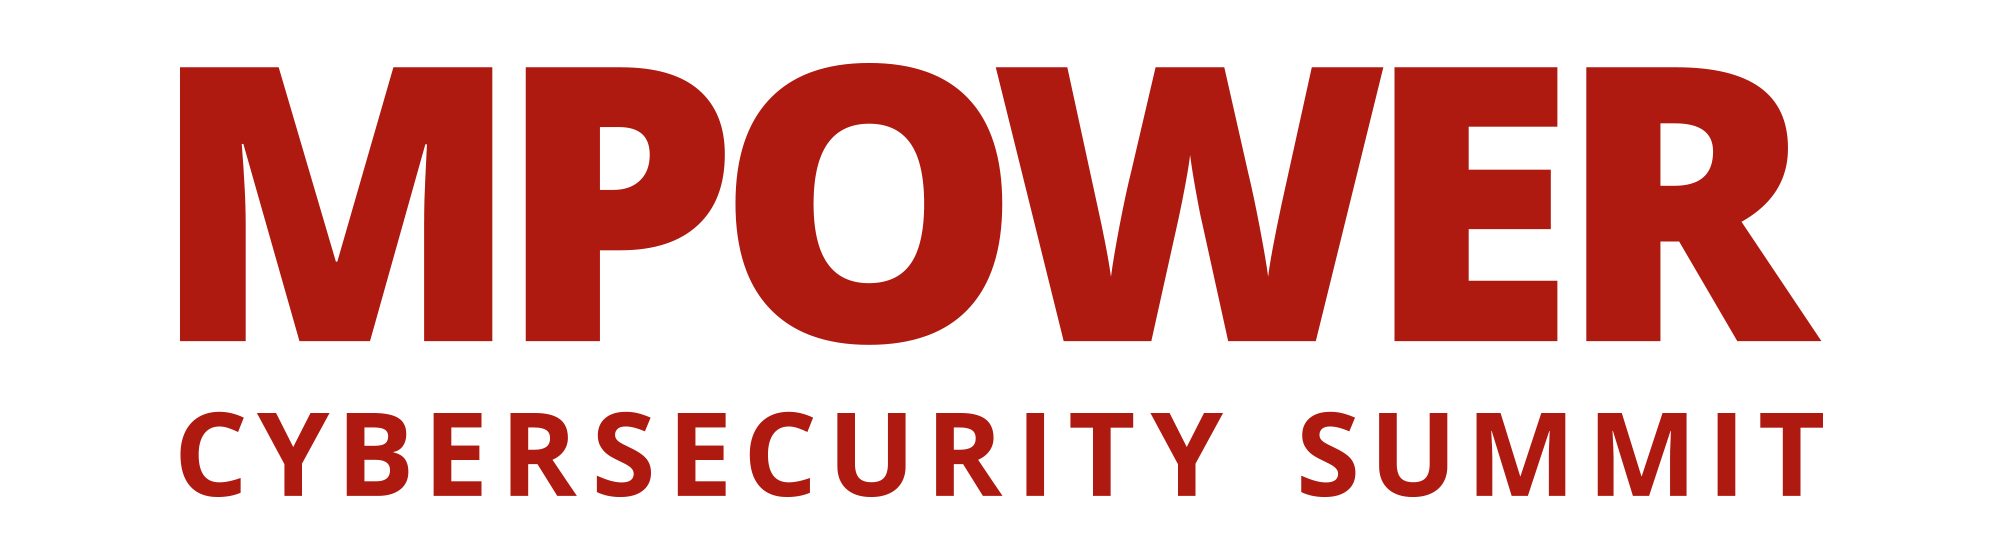 mpower-cybersecurity-event